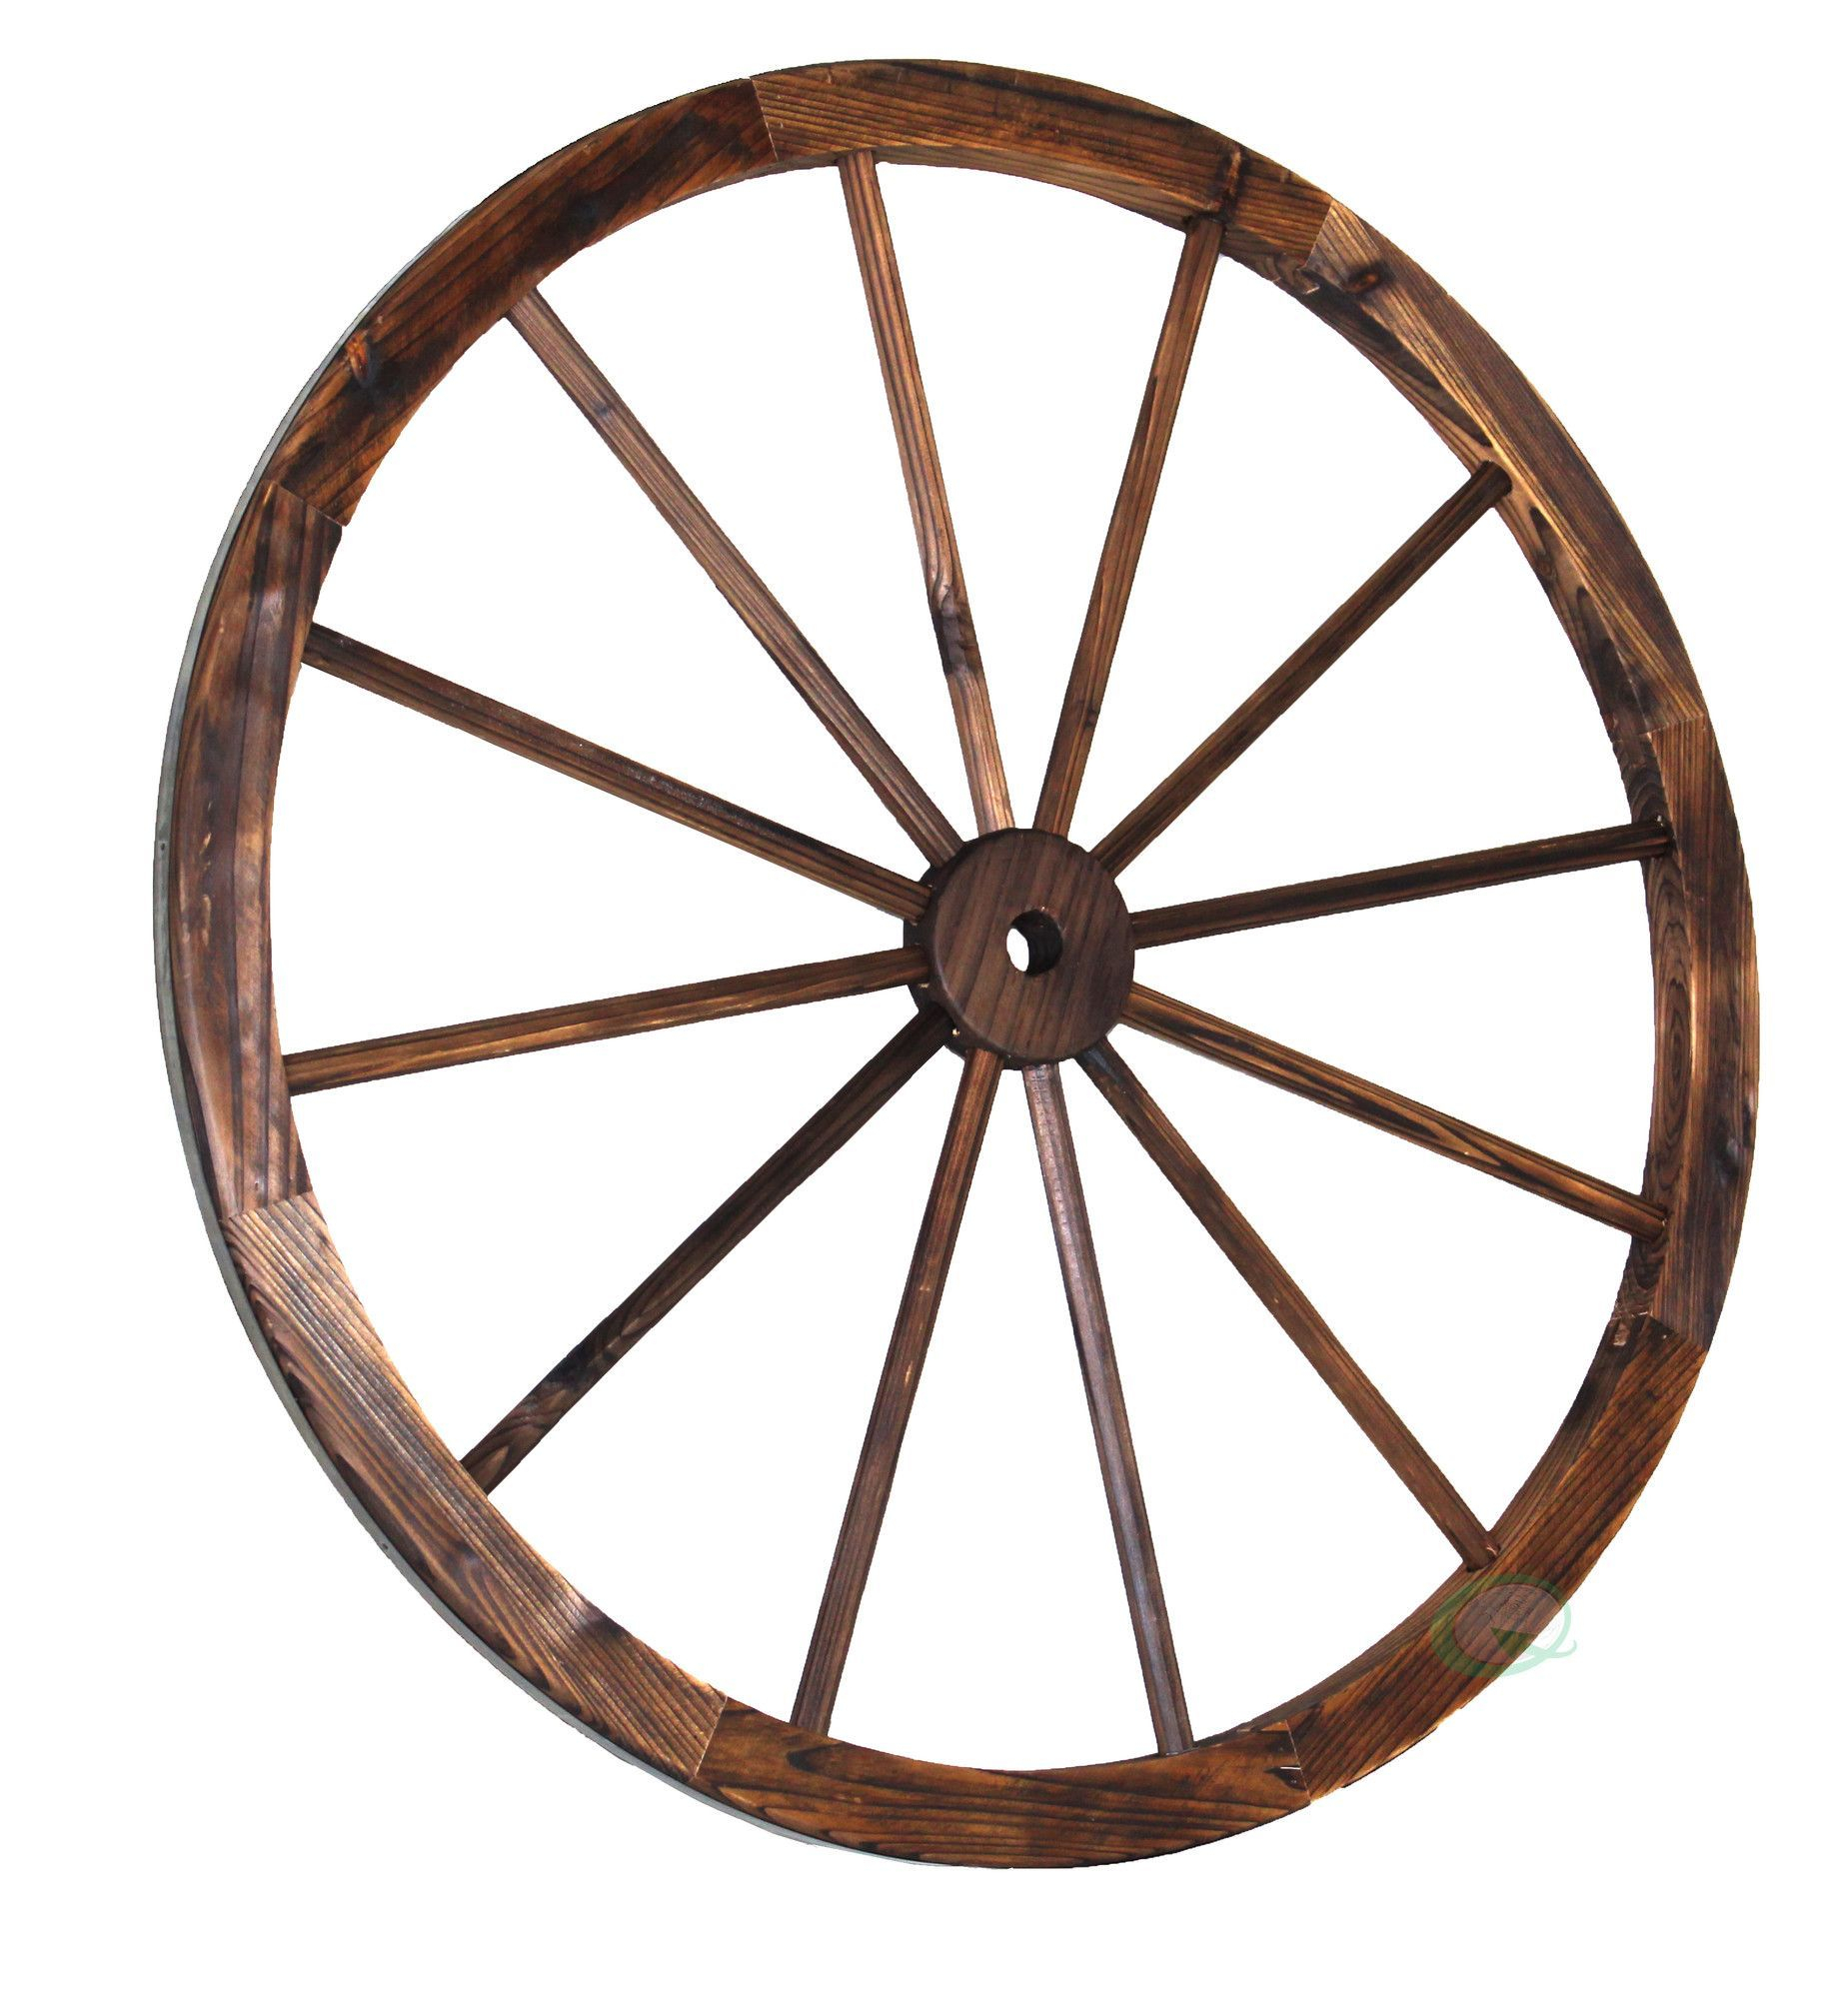 Wagon Wheel Decor, Wall pertaining to Millanocket Metal Wheel Photo Holder Wall Decor